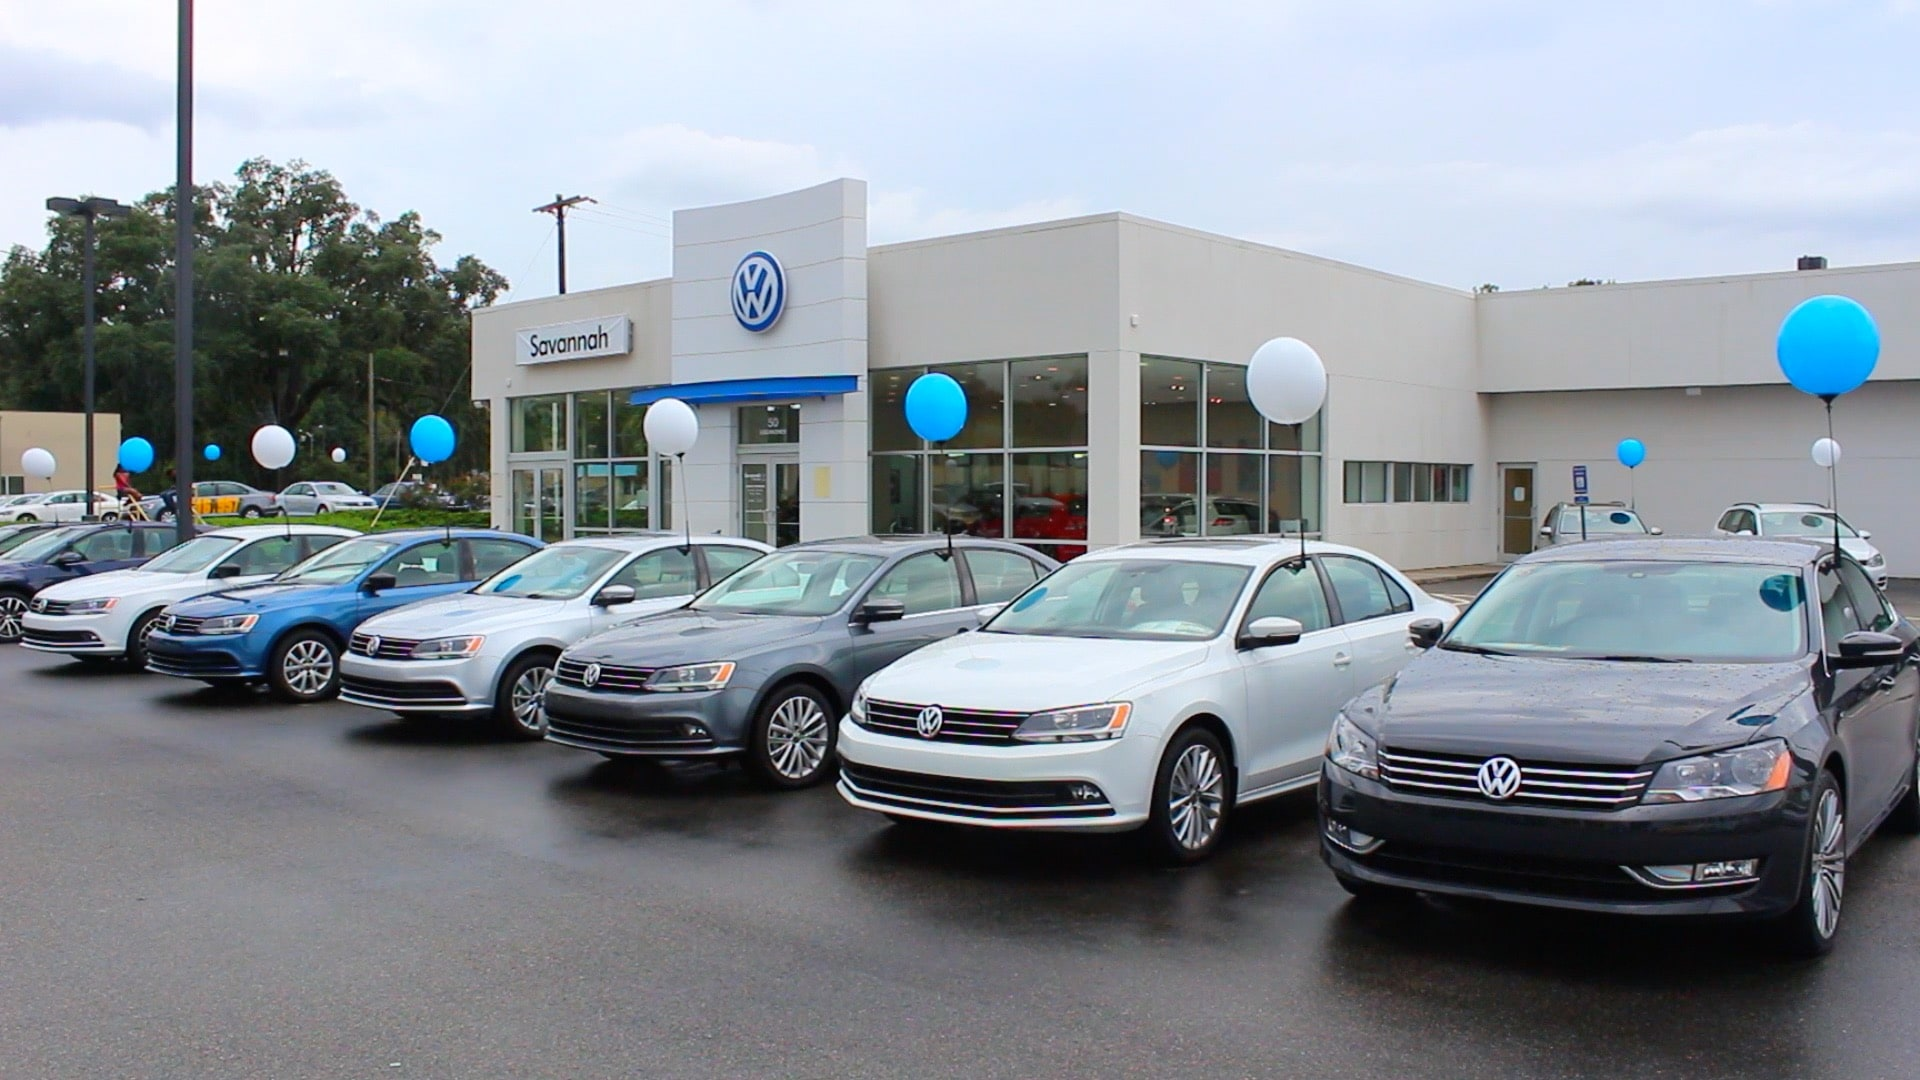 About Savannah Volkswagen | Auto Dealer Savannah GA